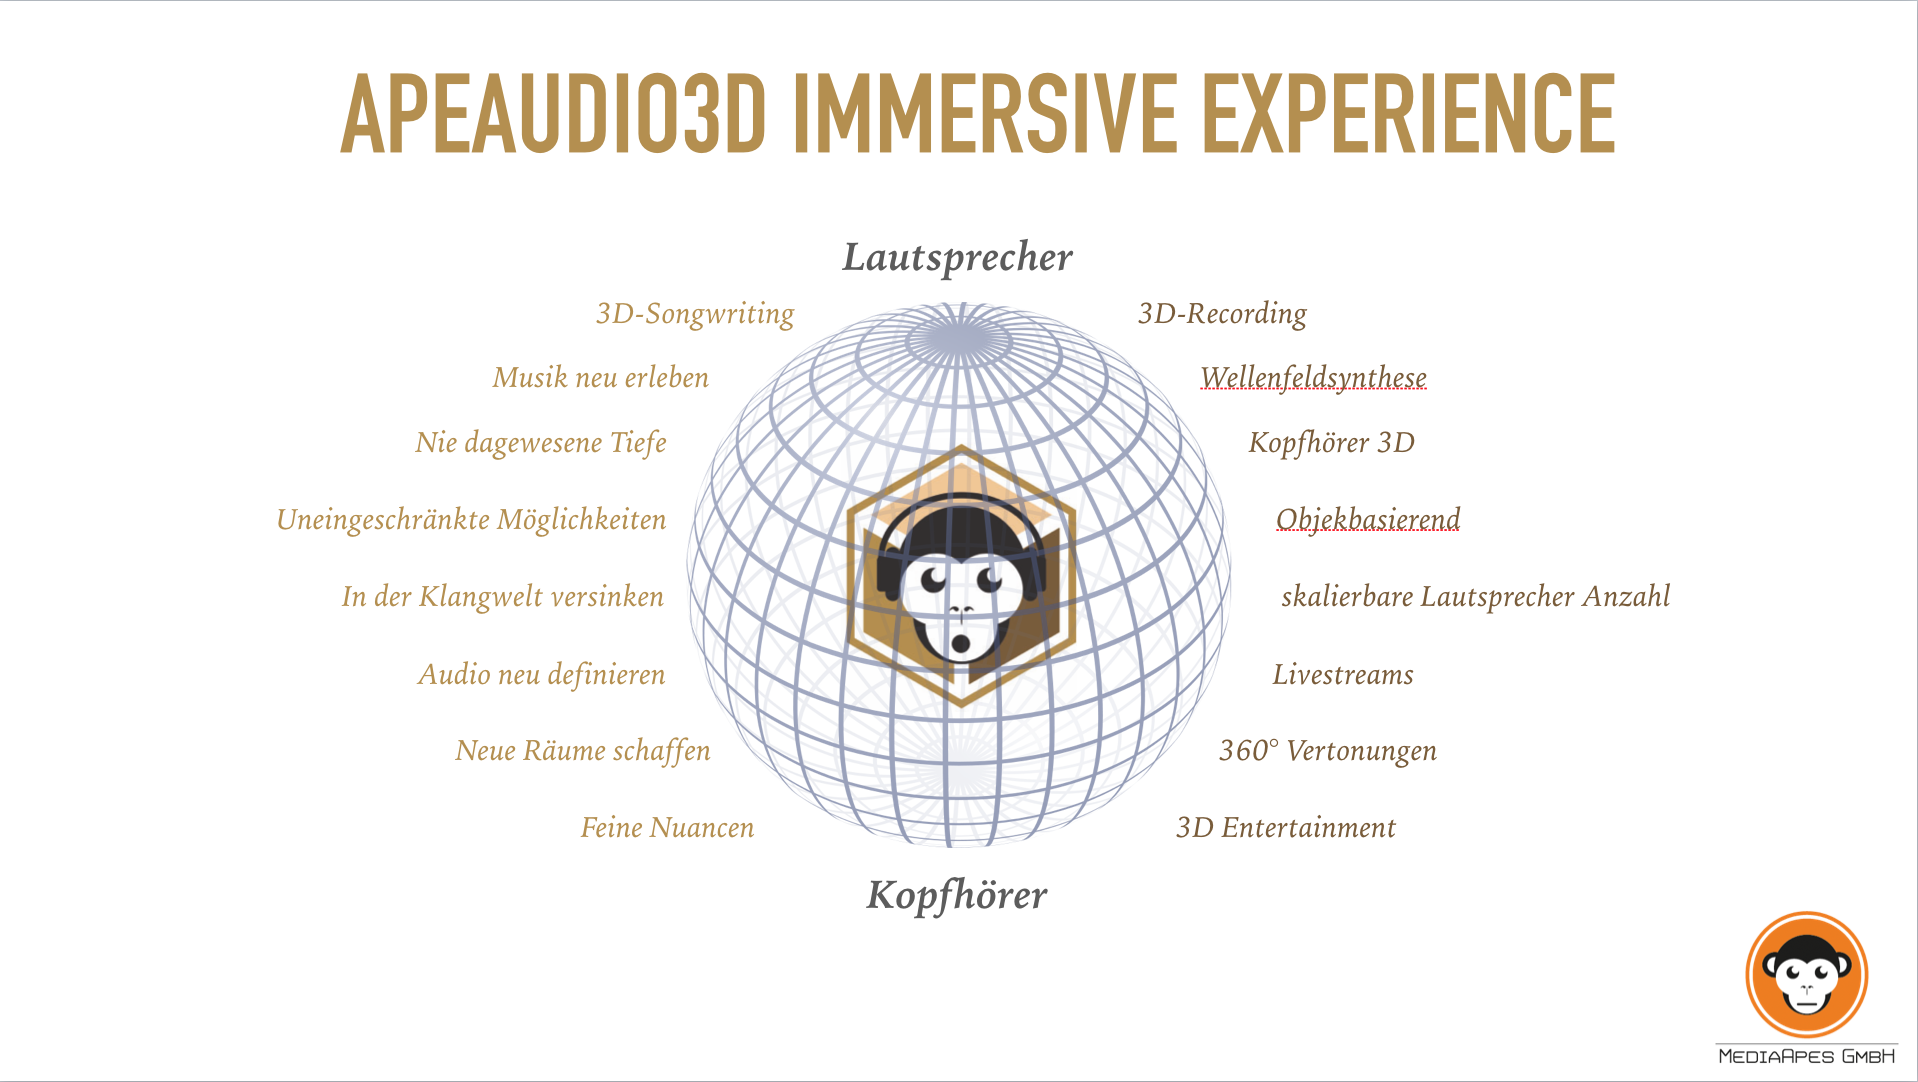 ApeAudio3D Immersive Experience